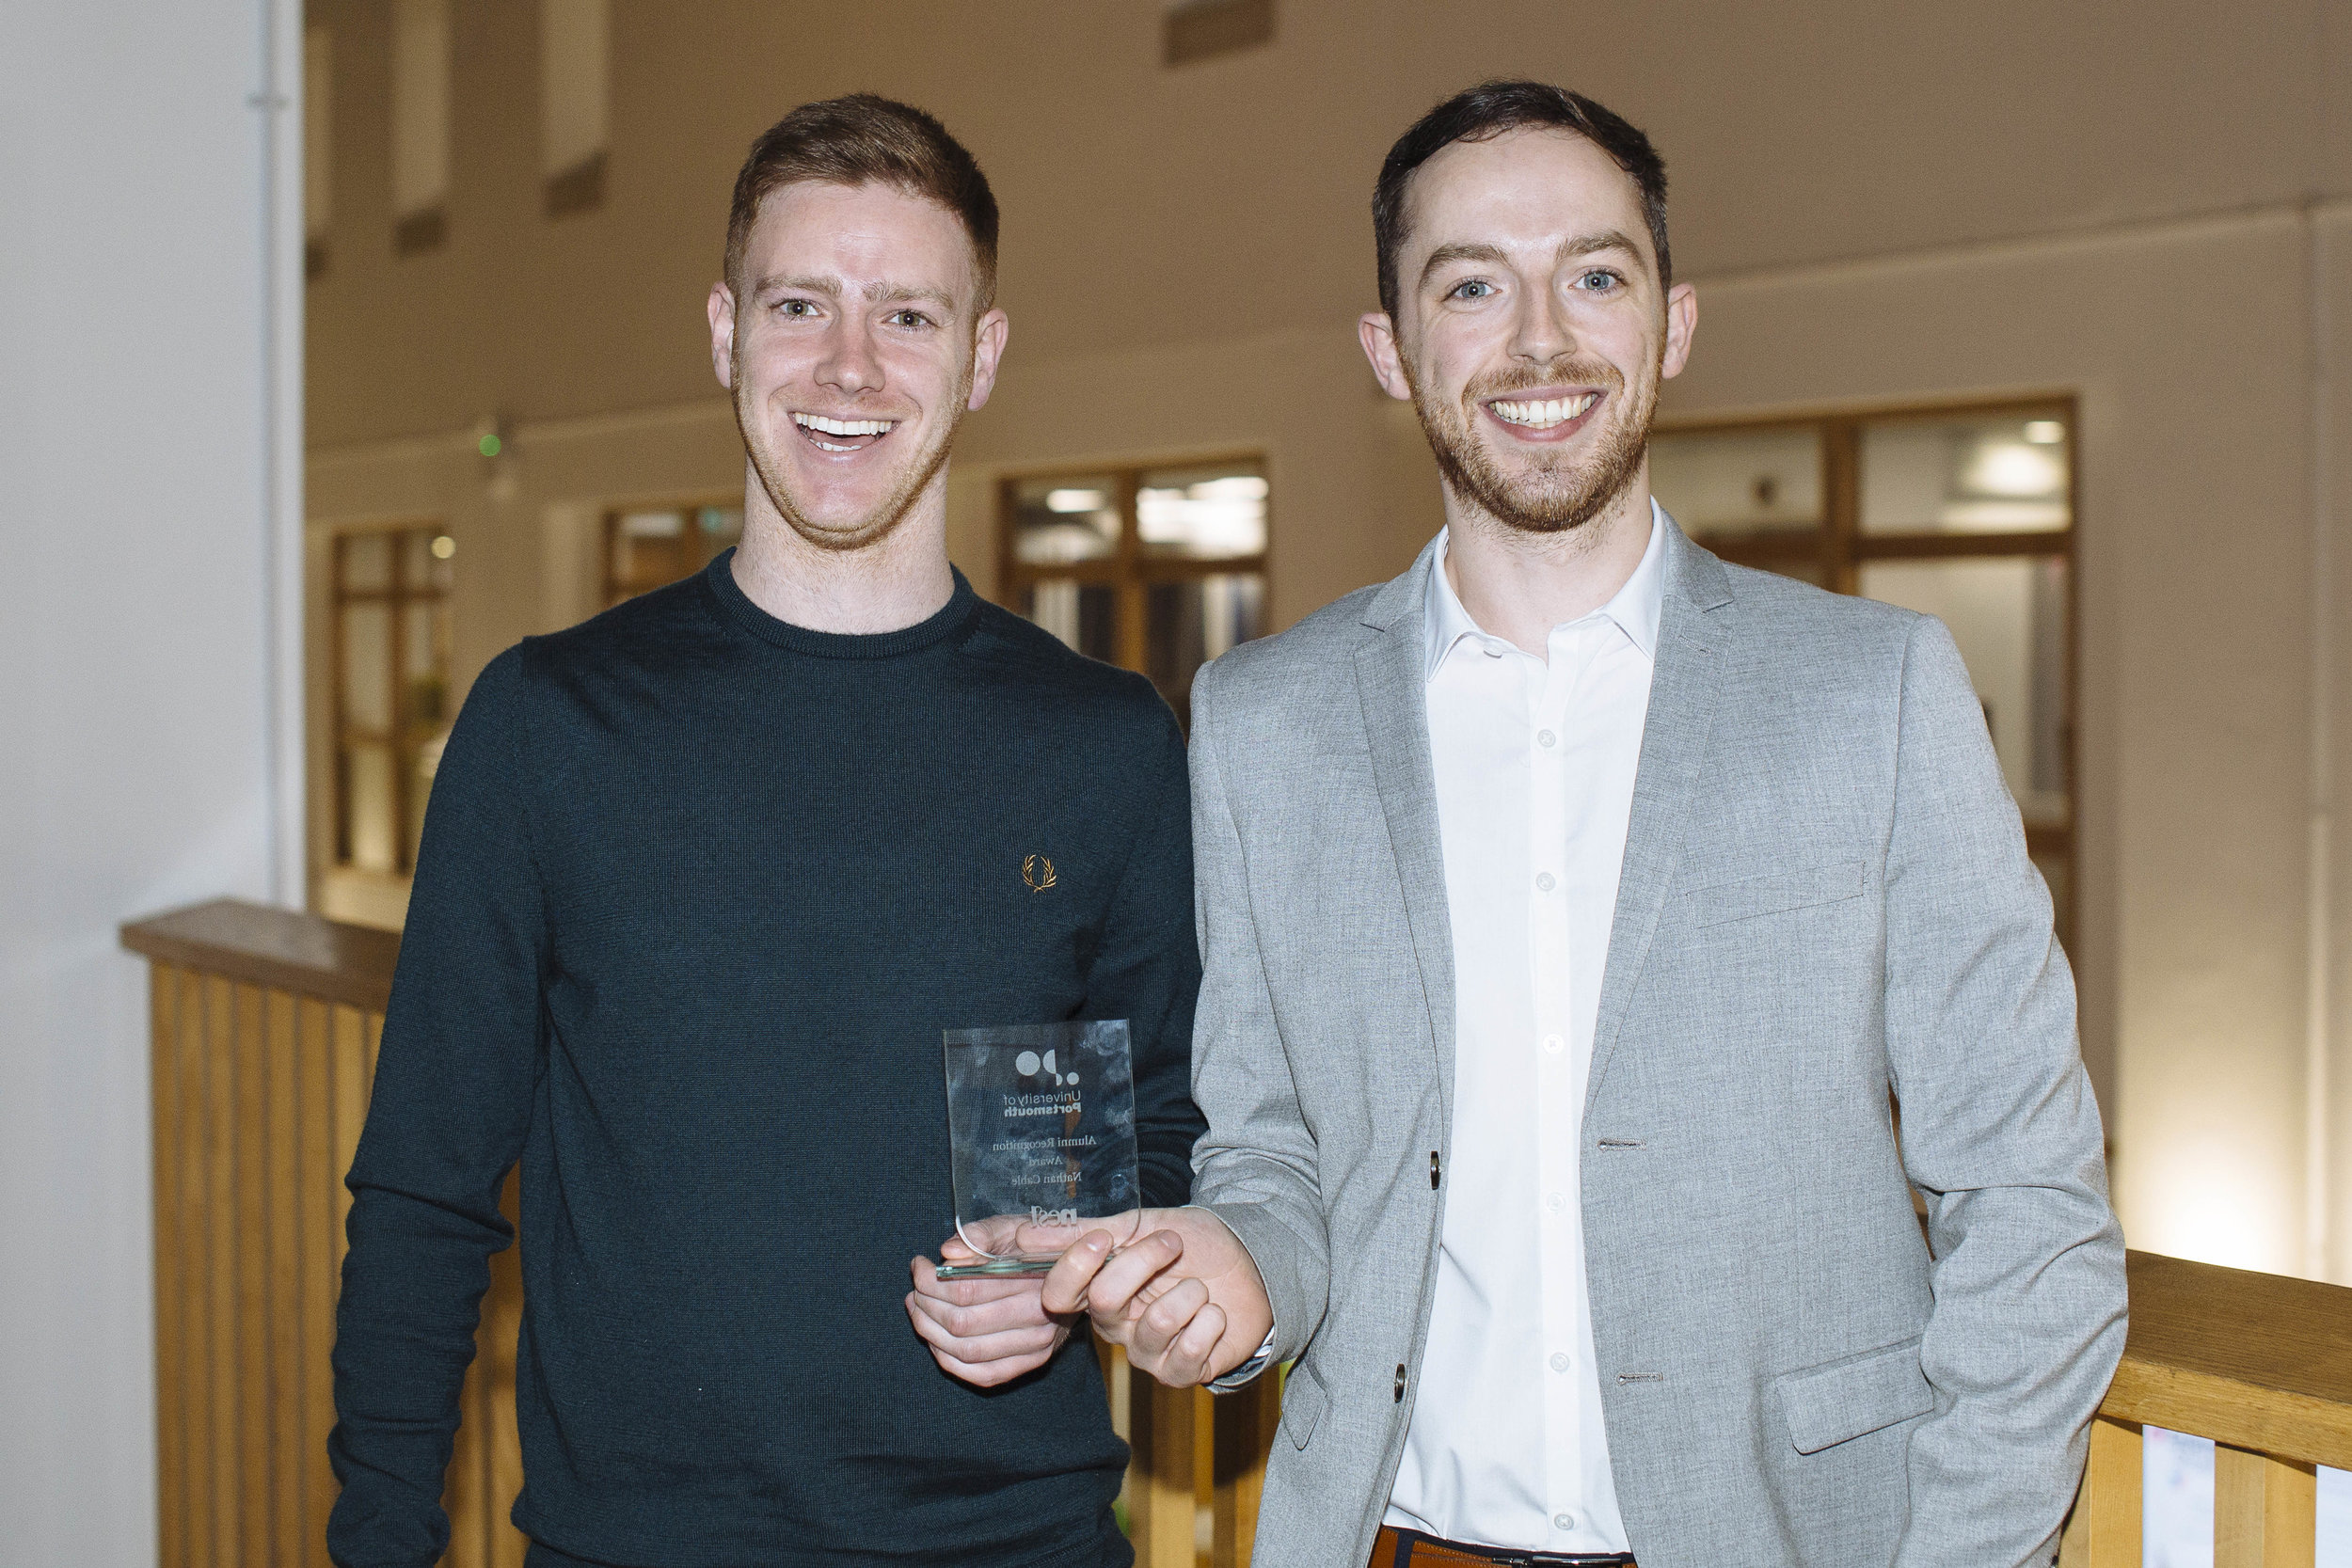 Barry Moore (left) has scooped a 30 under 30 TTG award for 2018